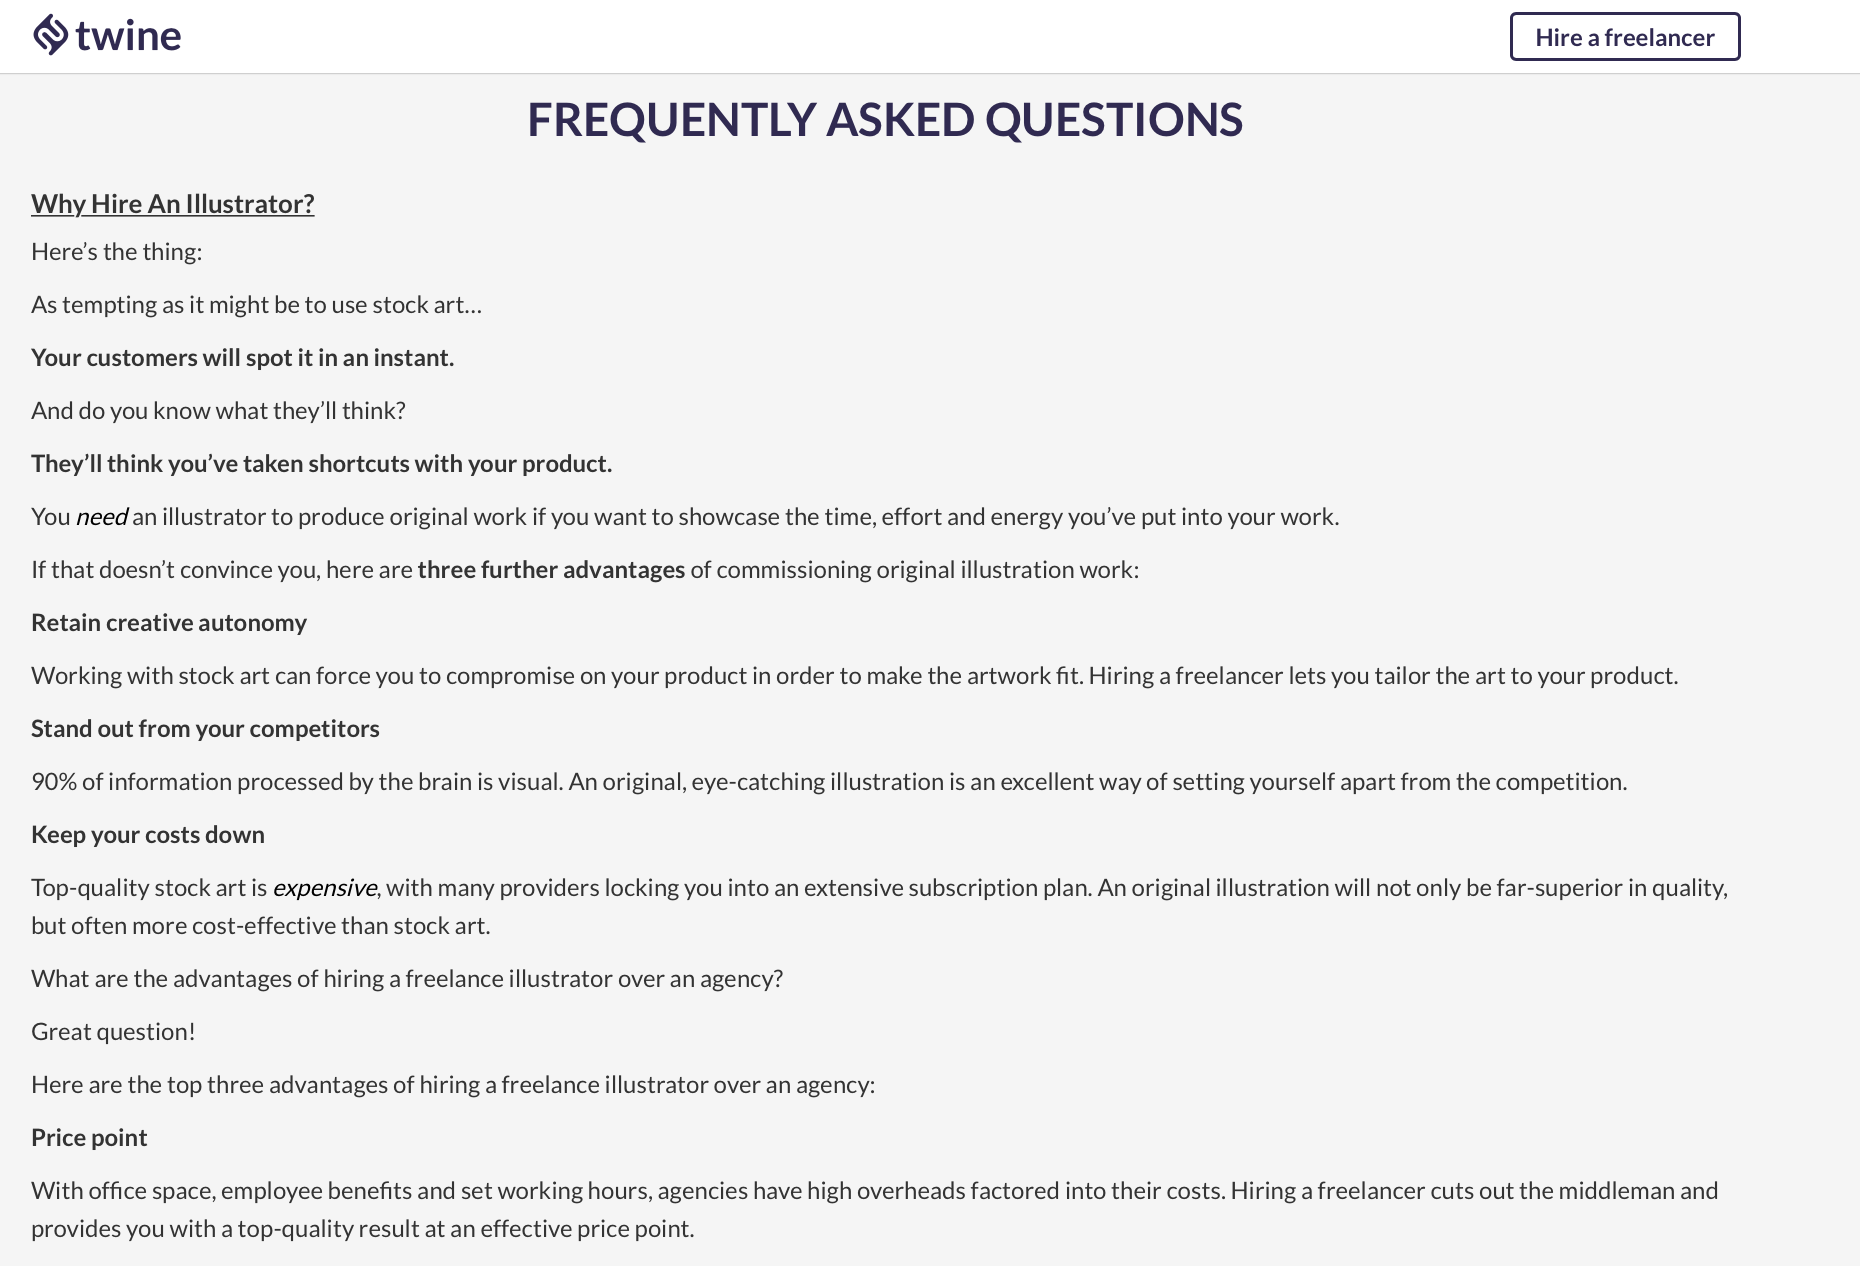 FAQs to increase conversion rate